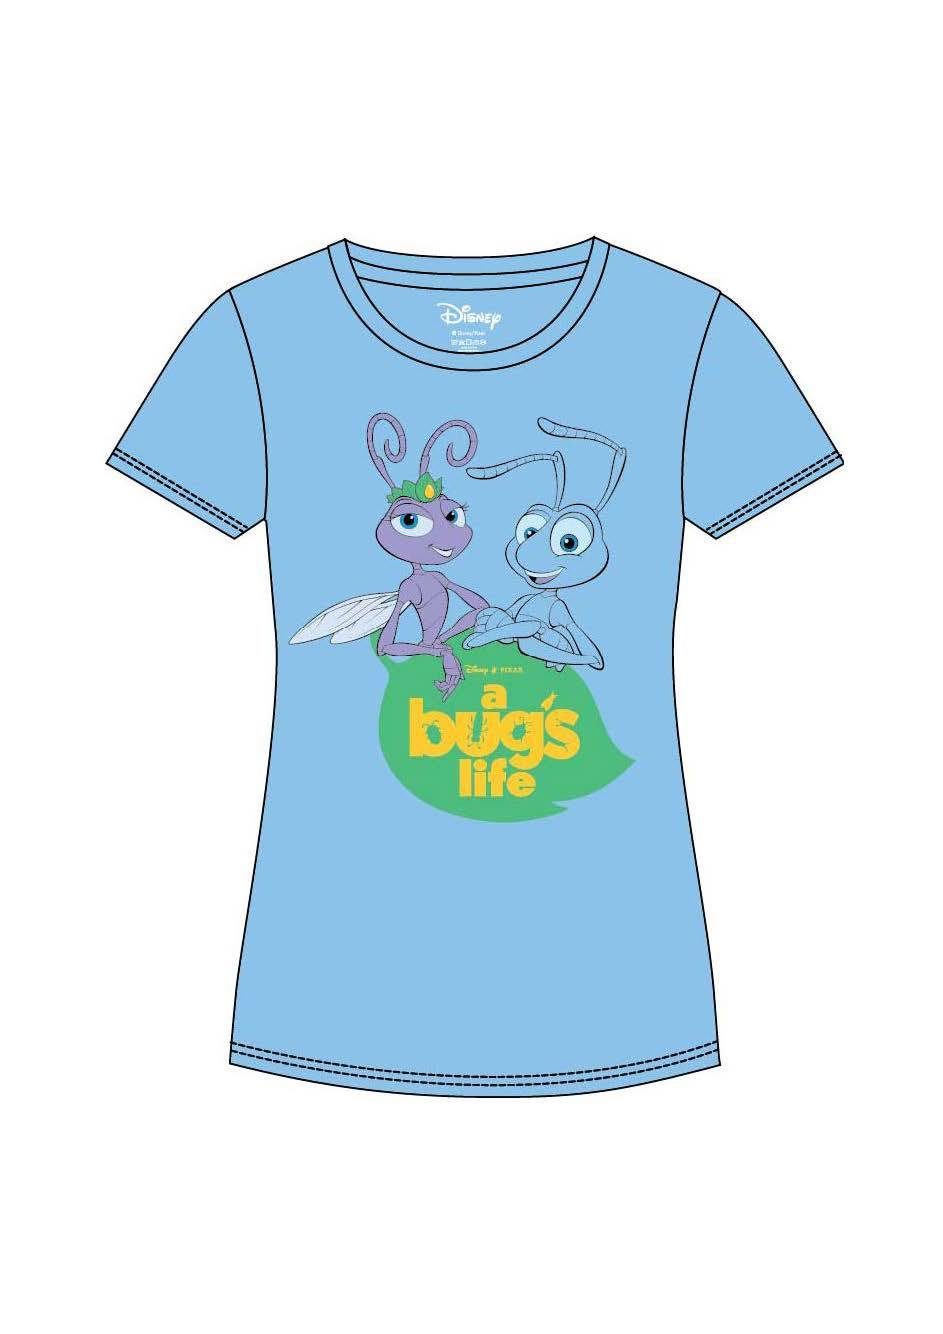 A Bug's Life Ladies T-Shirt Logo & Characters Size S